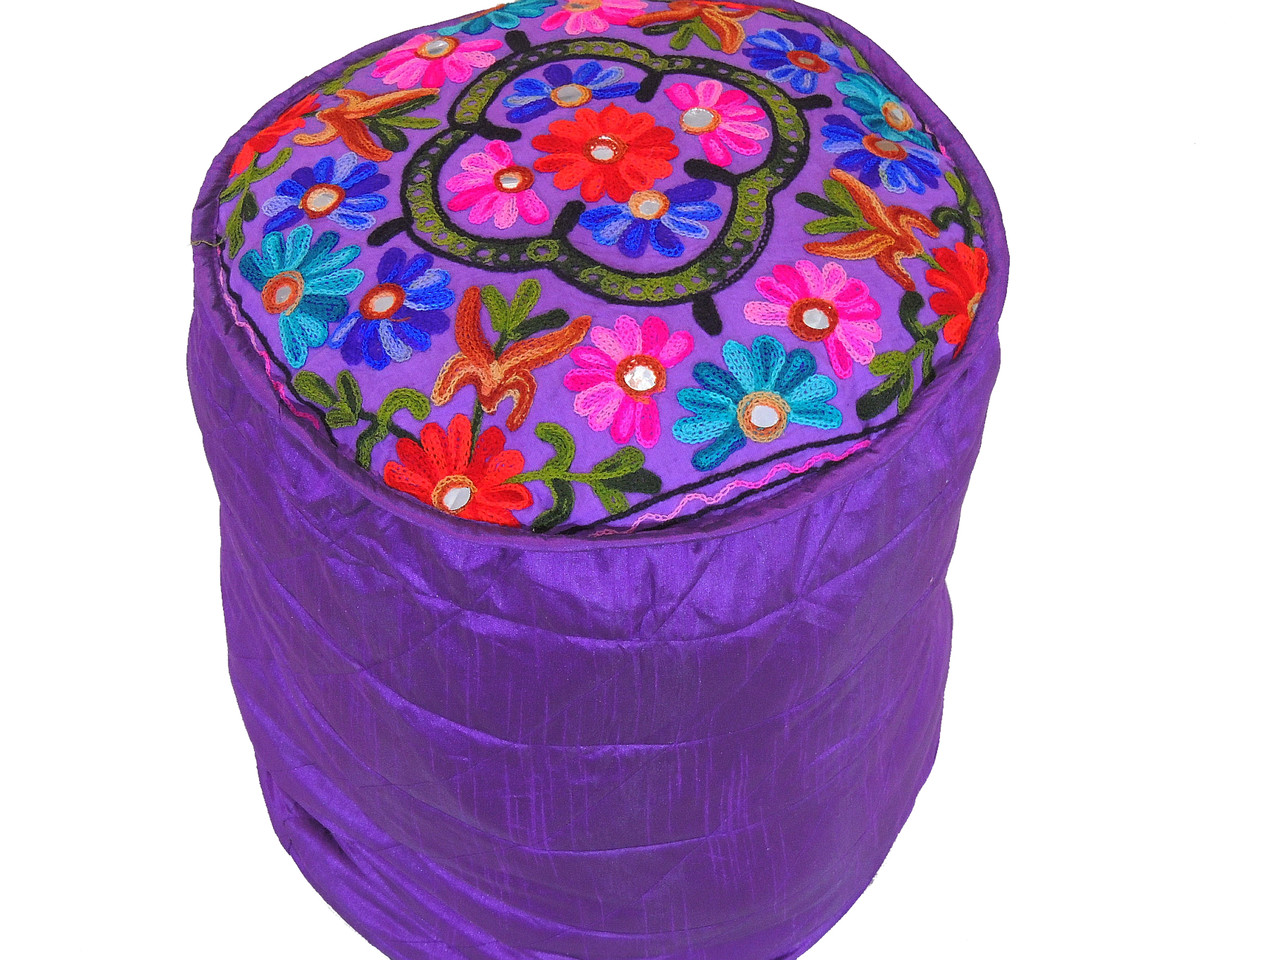 Purple Embroidered Round Pouf Cover Traditional Indian